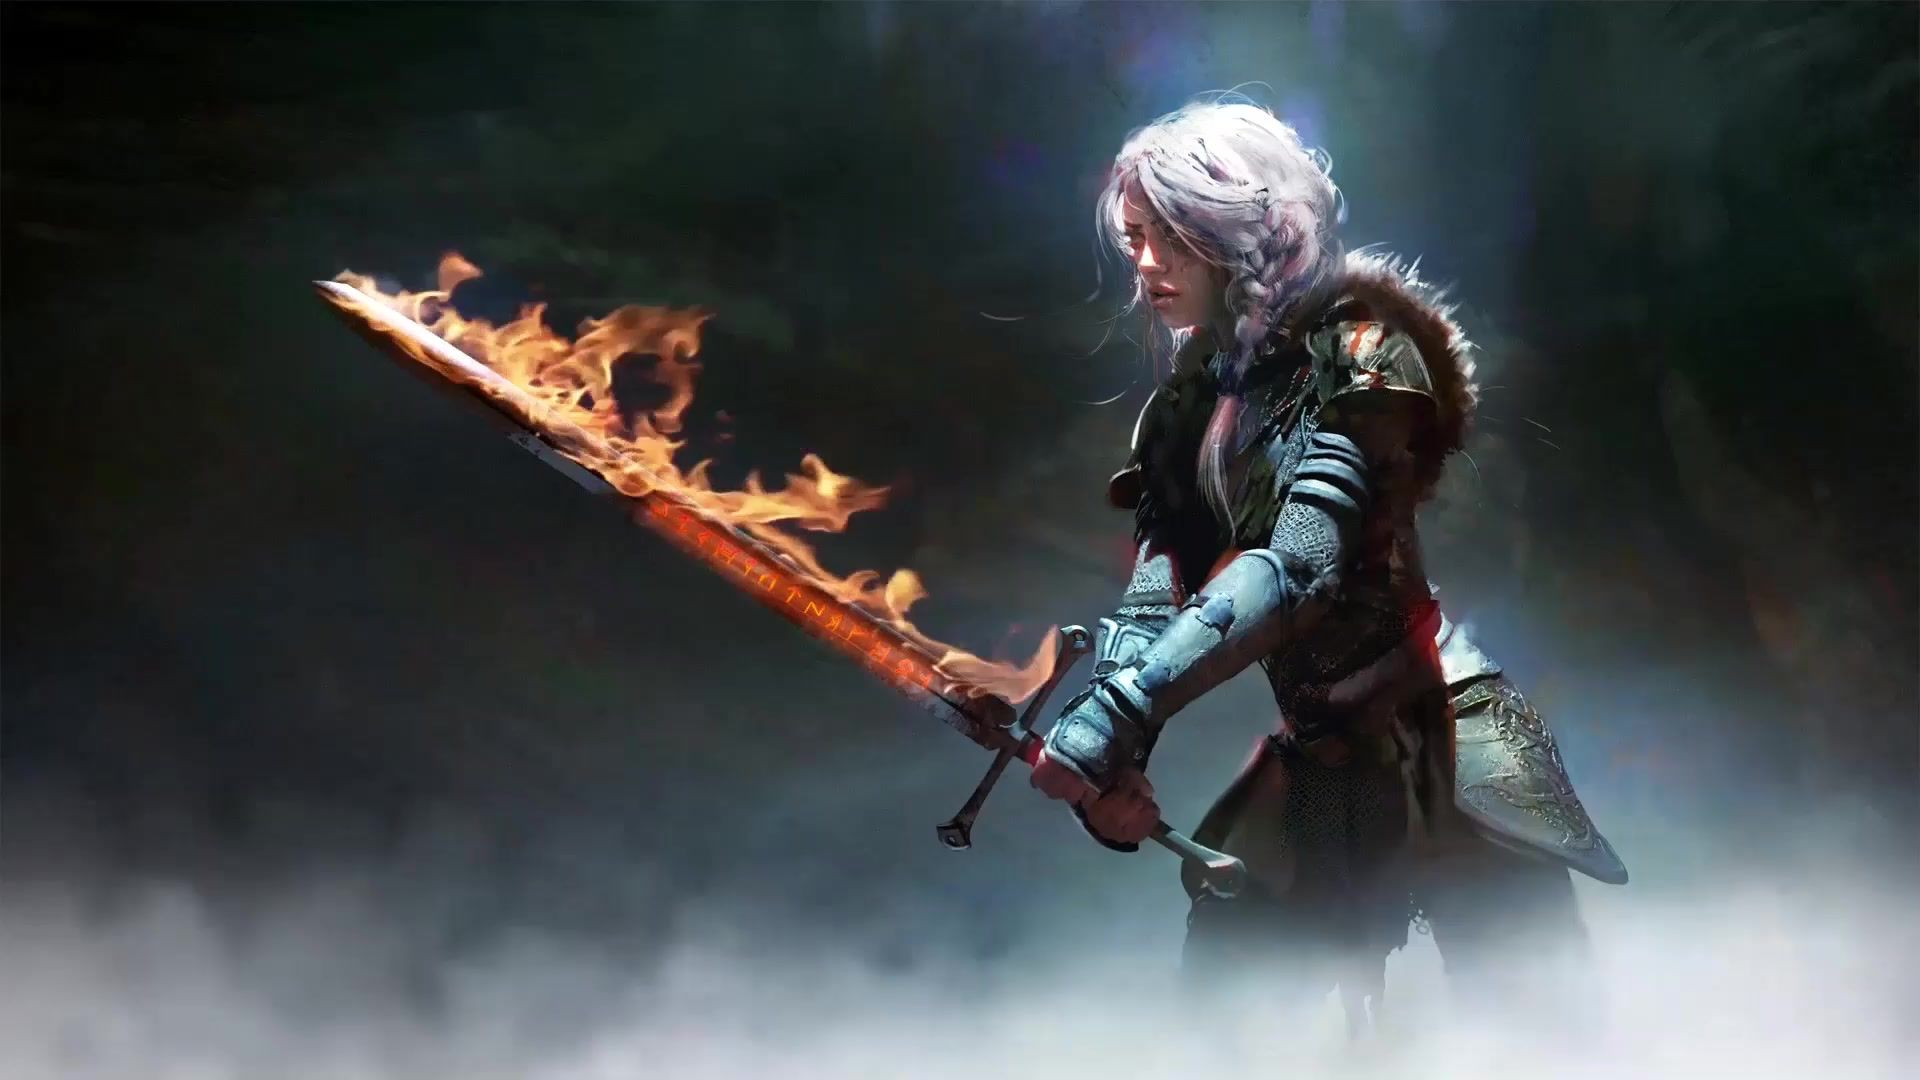 Witcher 3 Wallpaper Ciri Sword 1280x720 Download Hd Wallpaper Wallpapertip